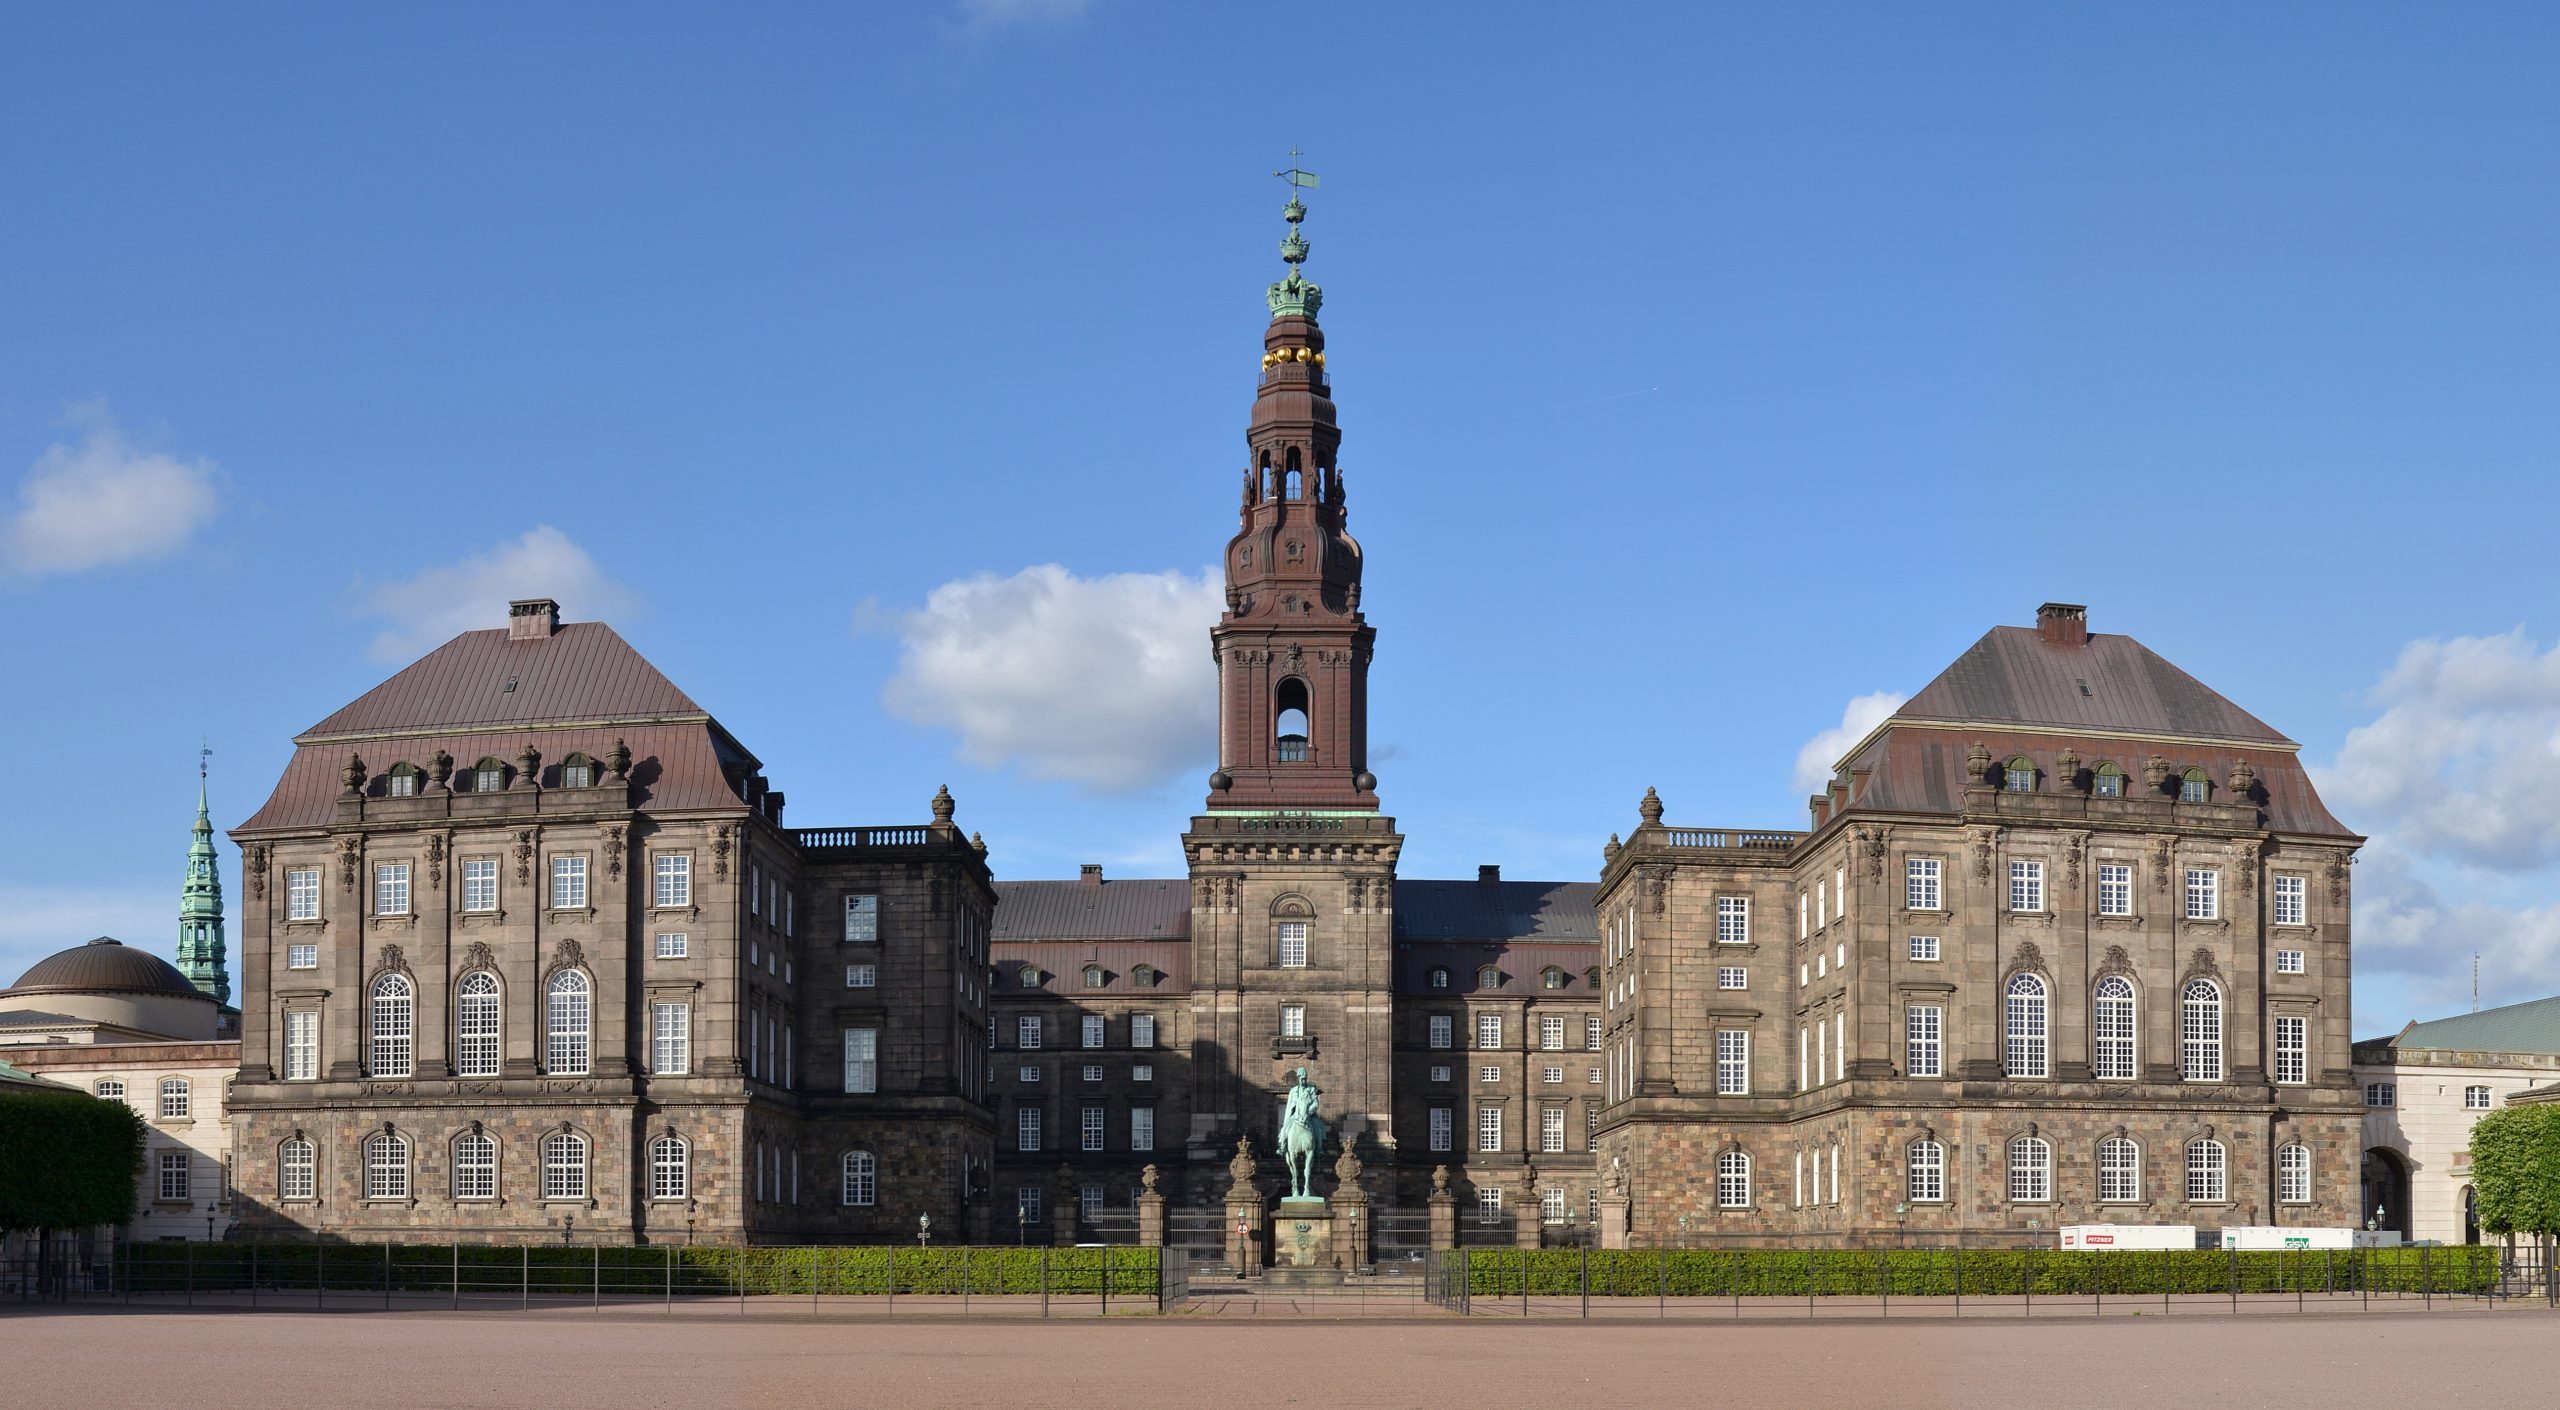 Christiansborg Palace - Most Popular Tourist Destination in Copenhagen